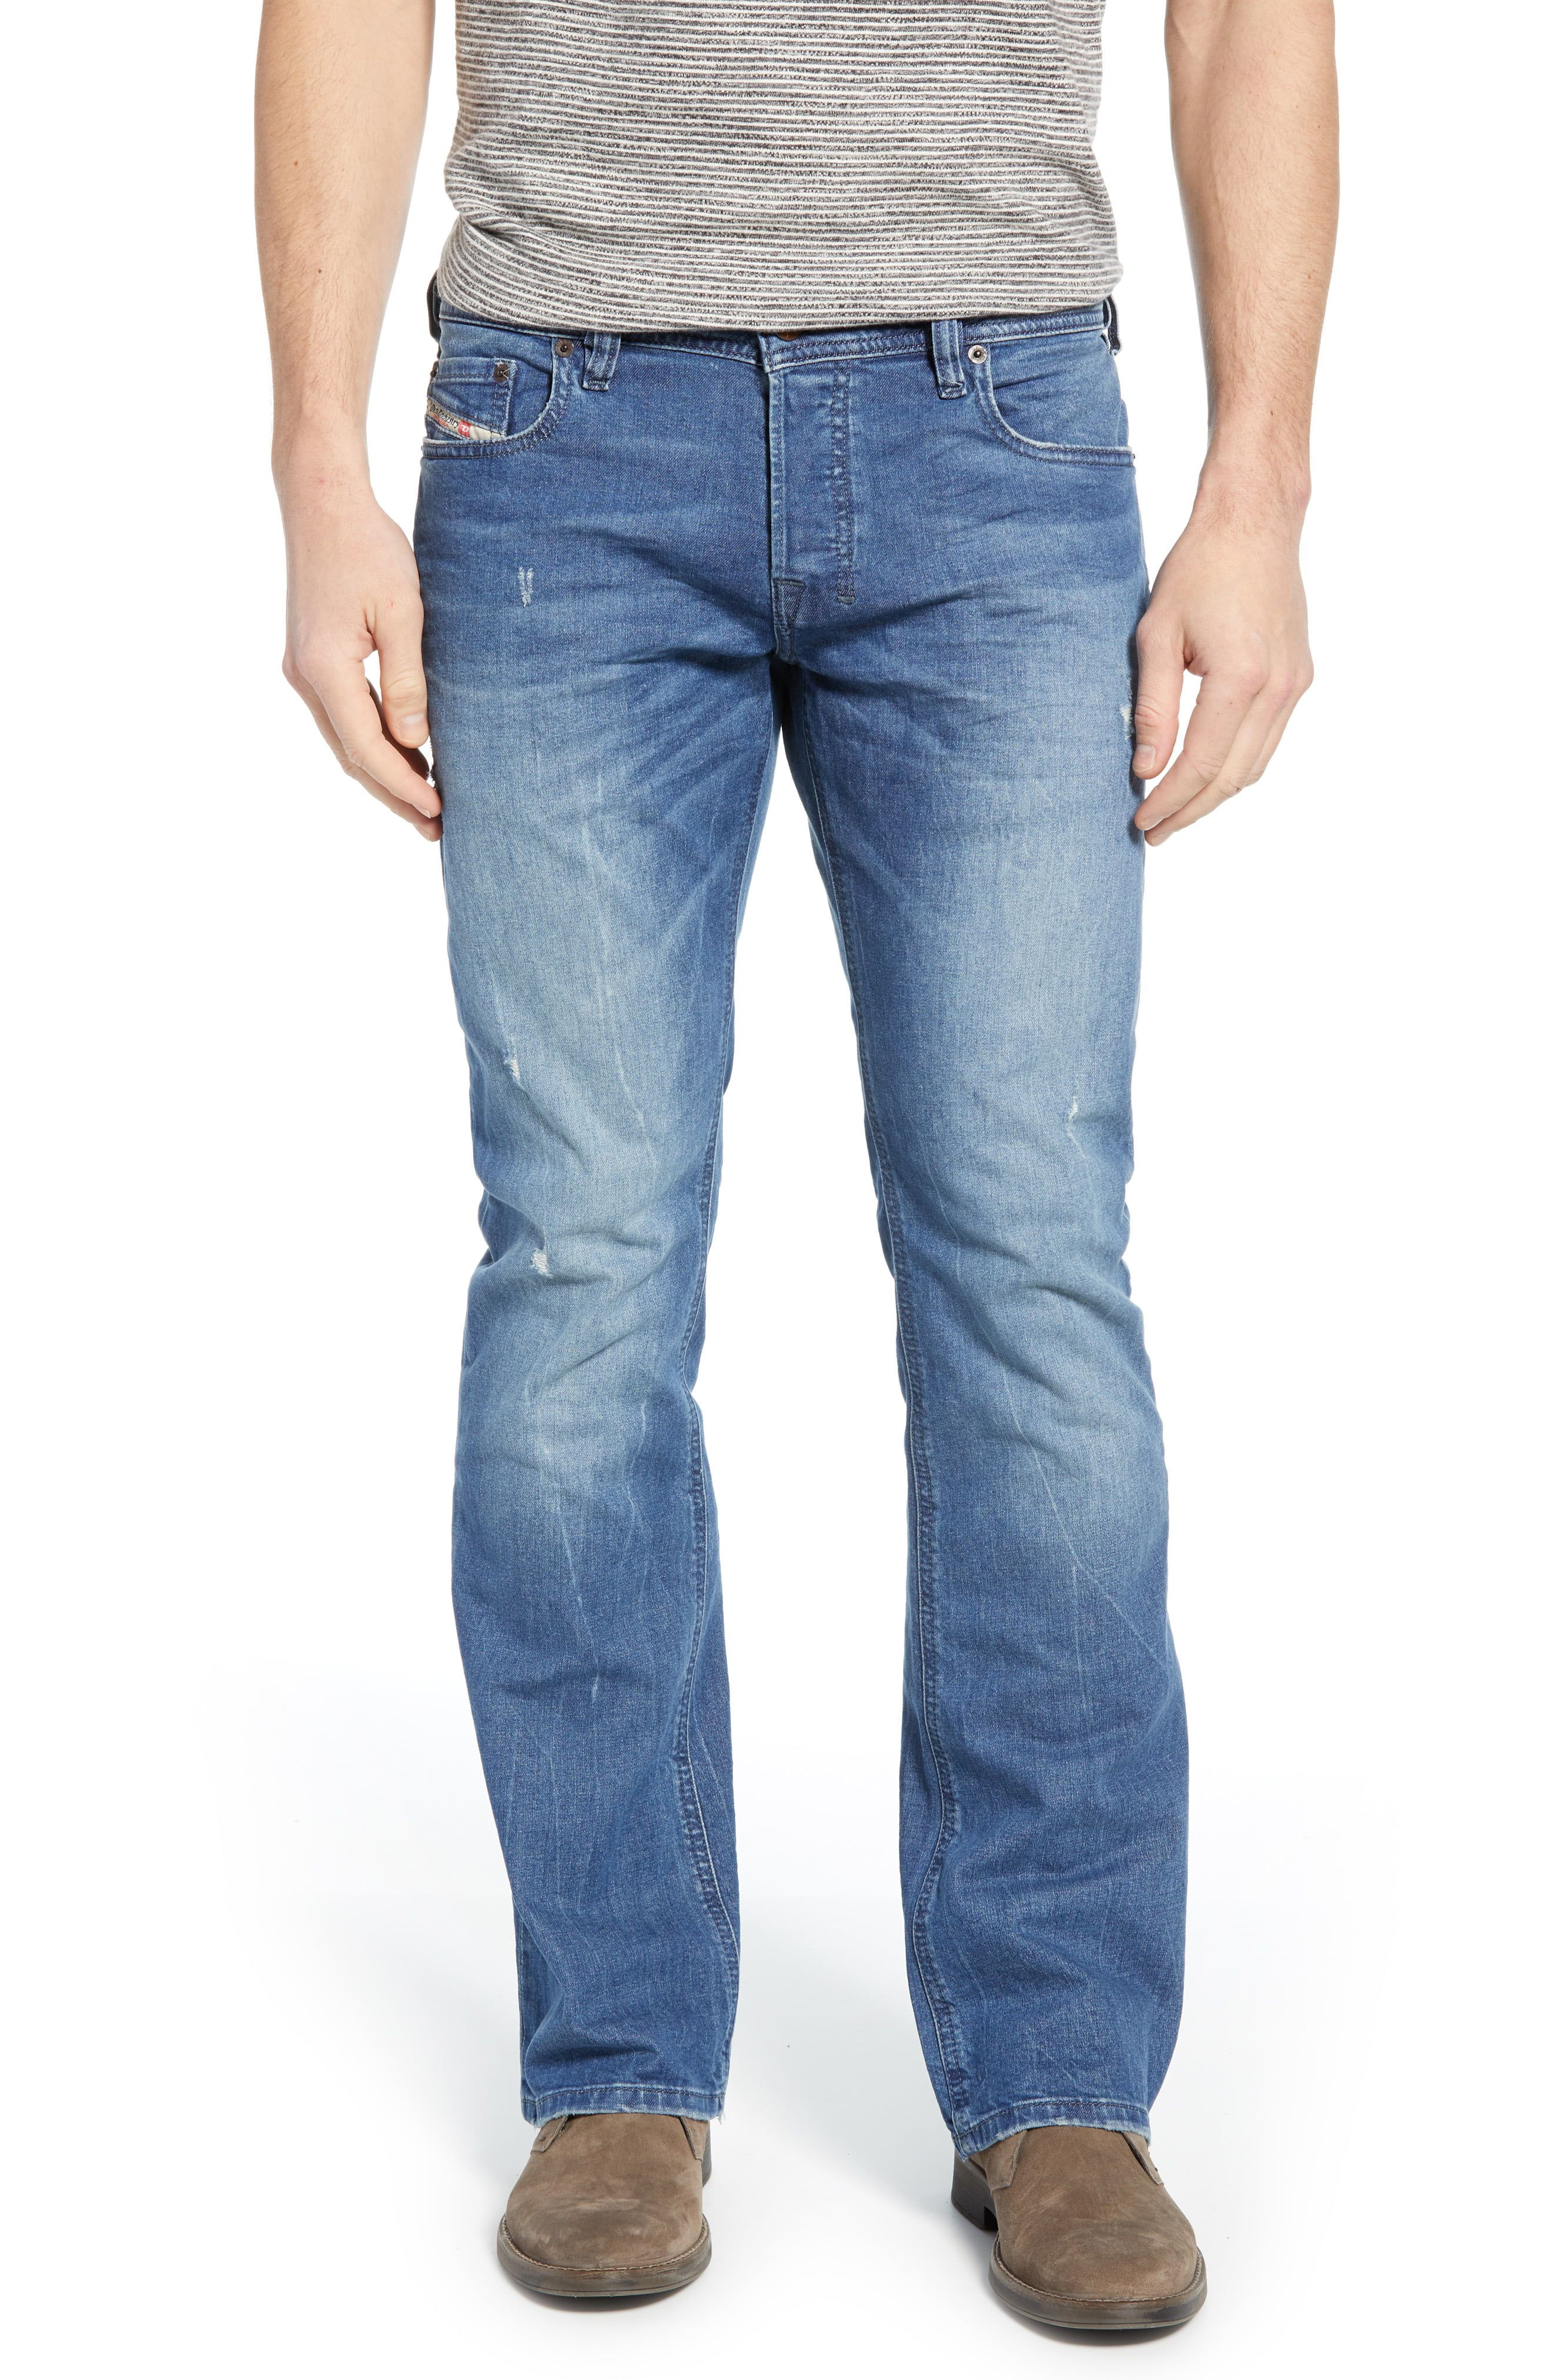 Diesel Zatiny Bootcut Jeans C84ky Mens Clothing Styles Diesel Zatiny Skinny Fit Jeans